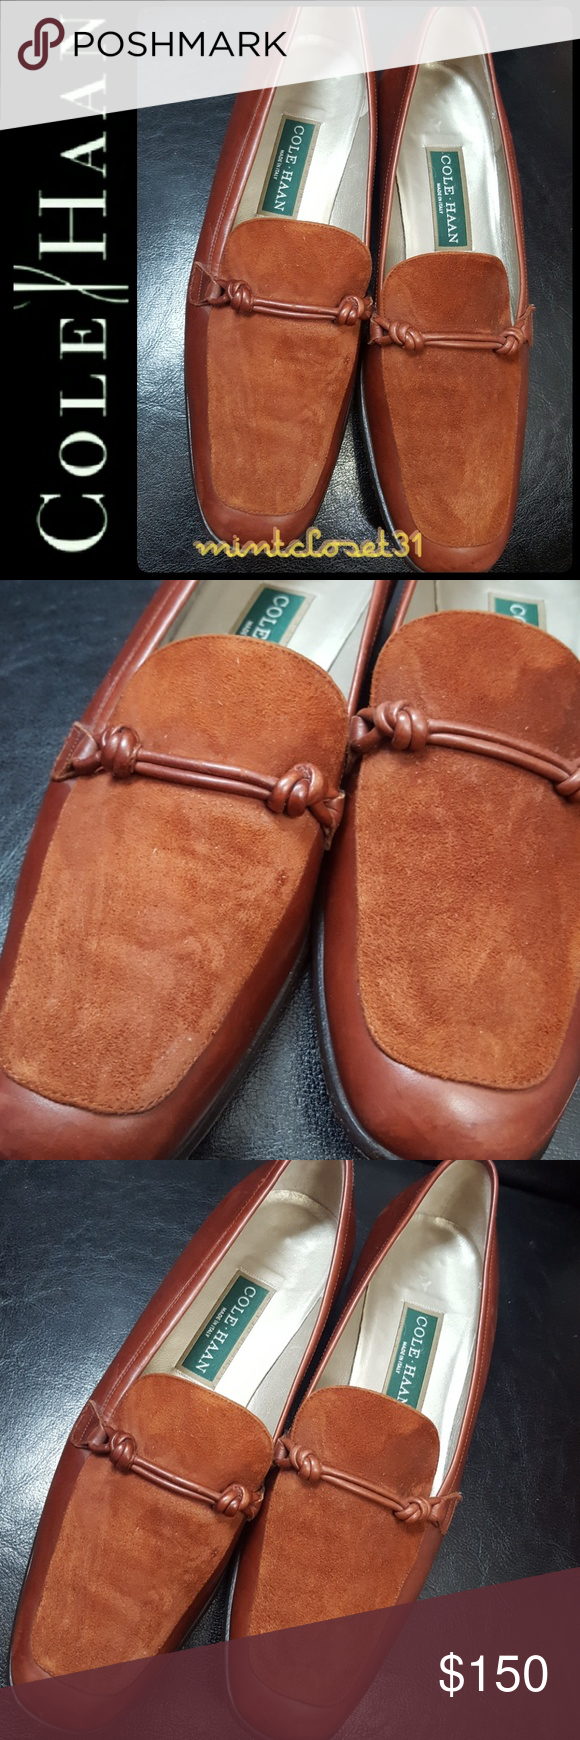 Leather loafers, Cole haan shoes